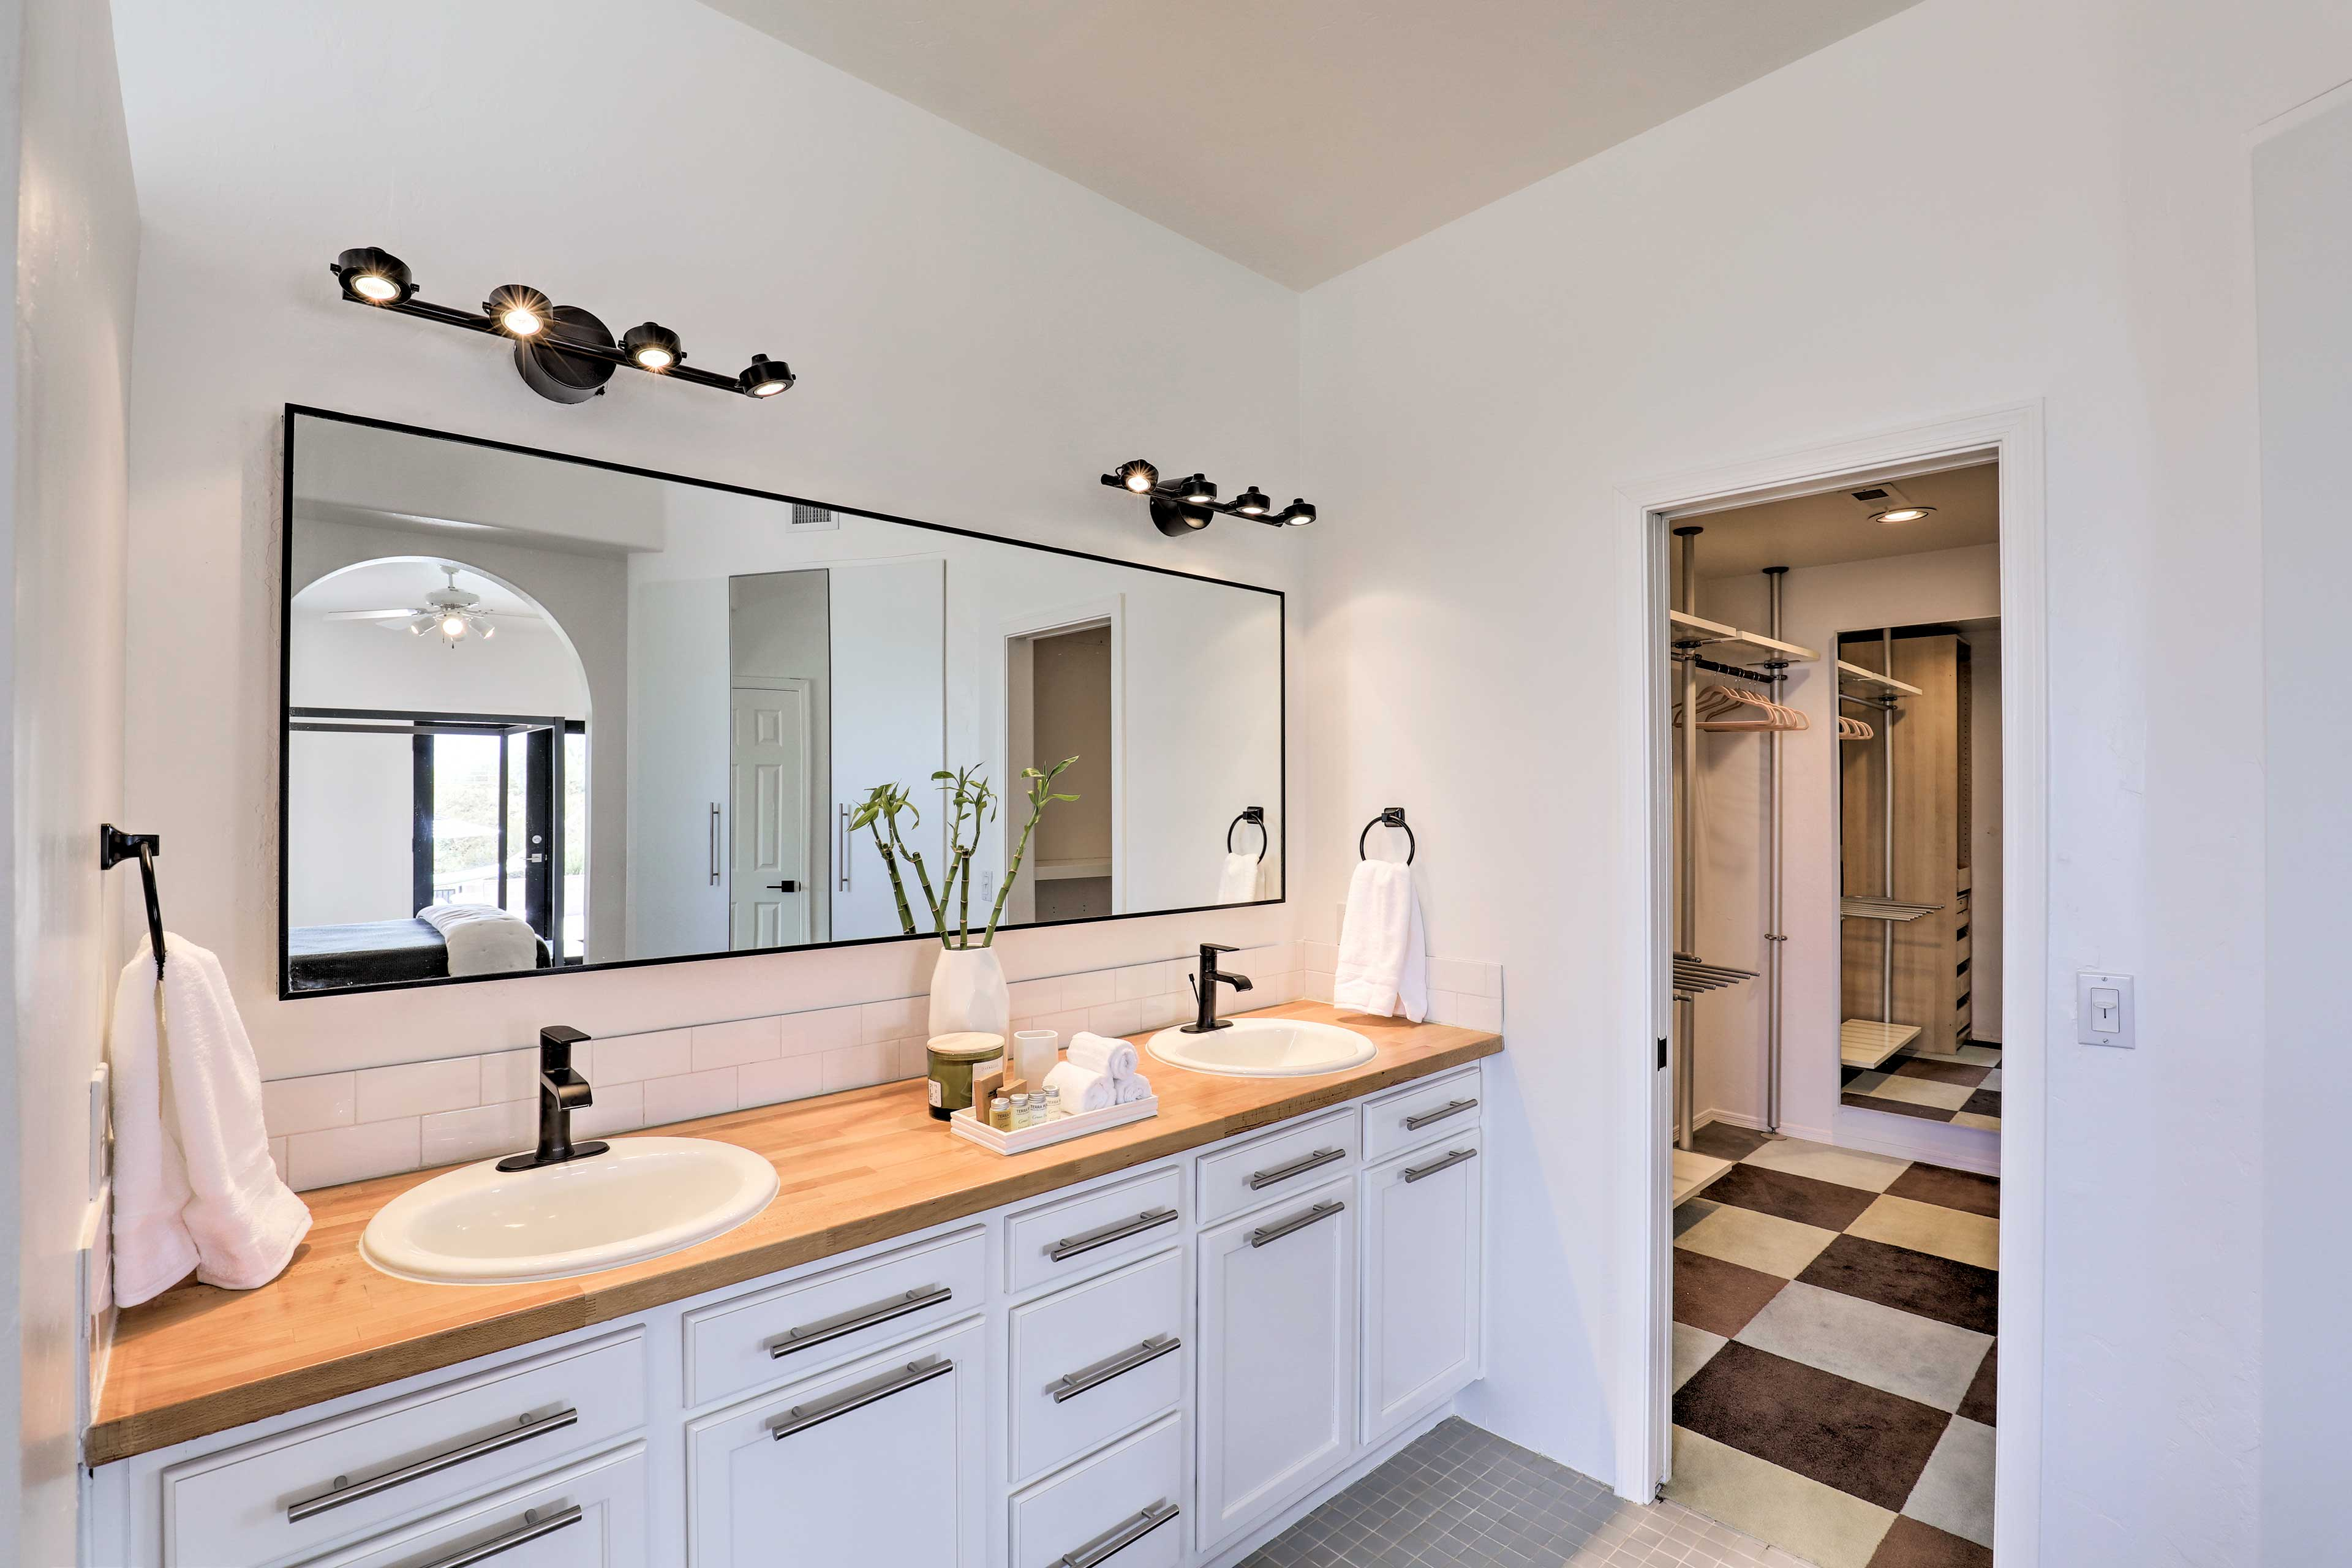 The dual sinks ensure that there'll never be an issue getting ready for the day.